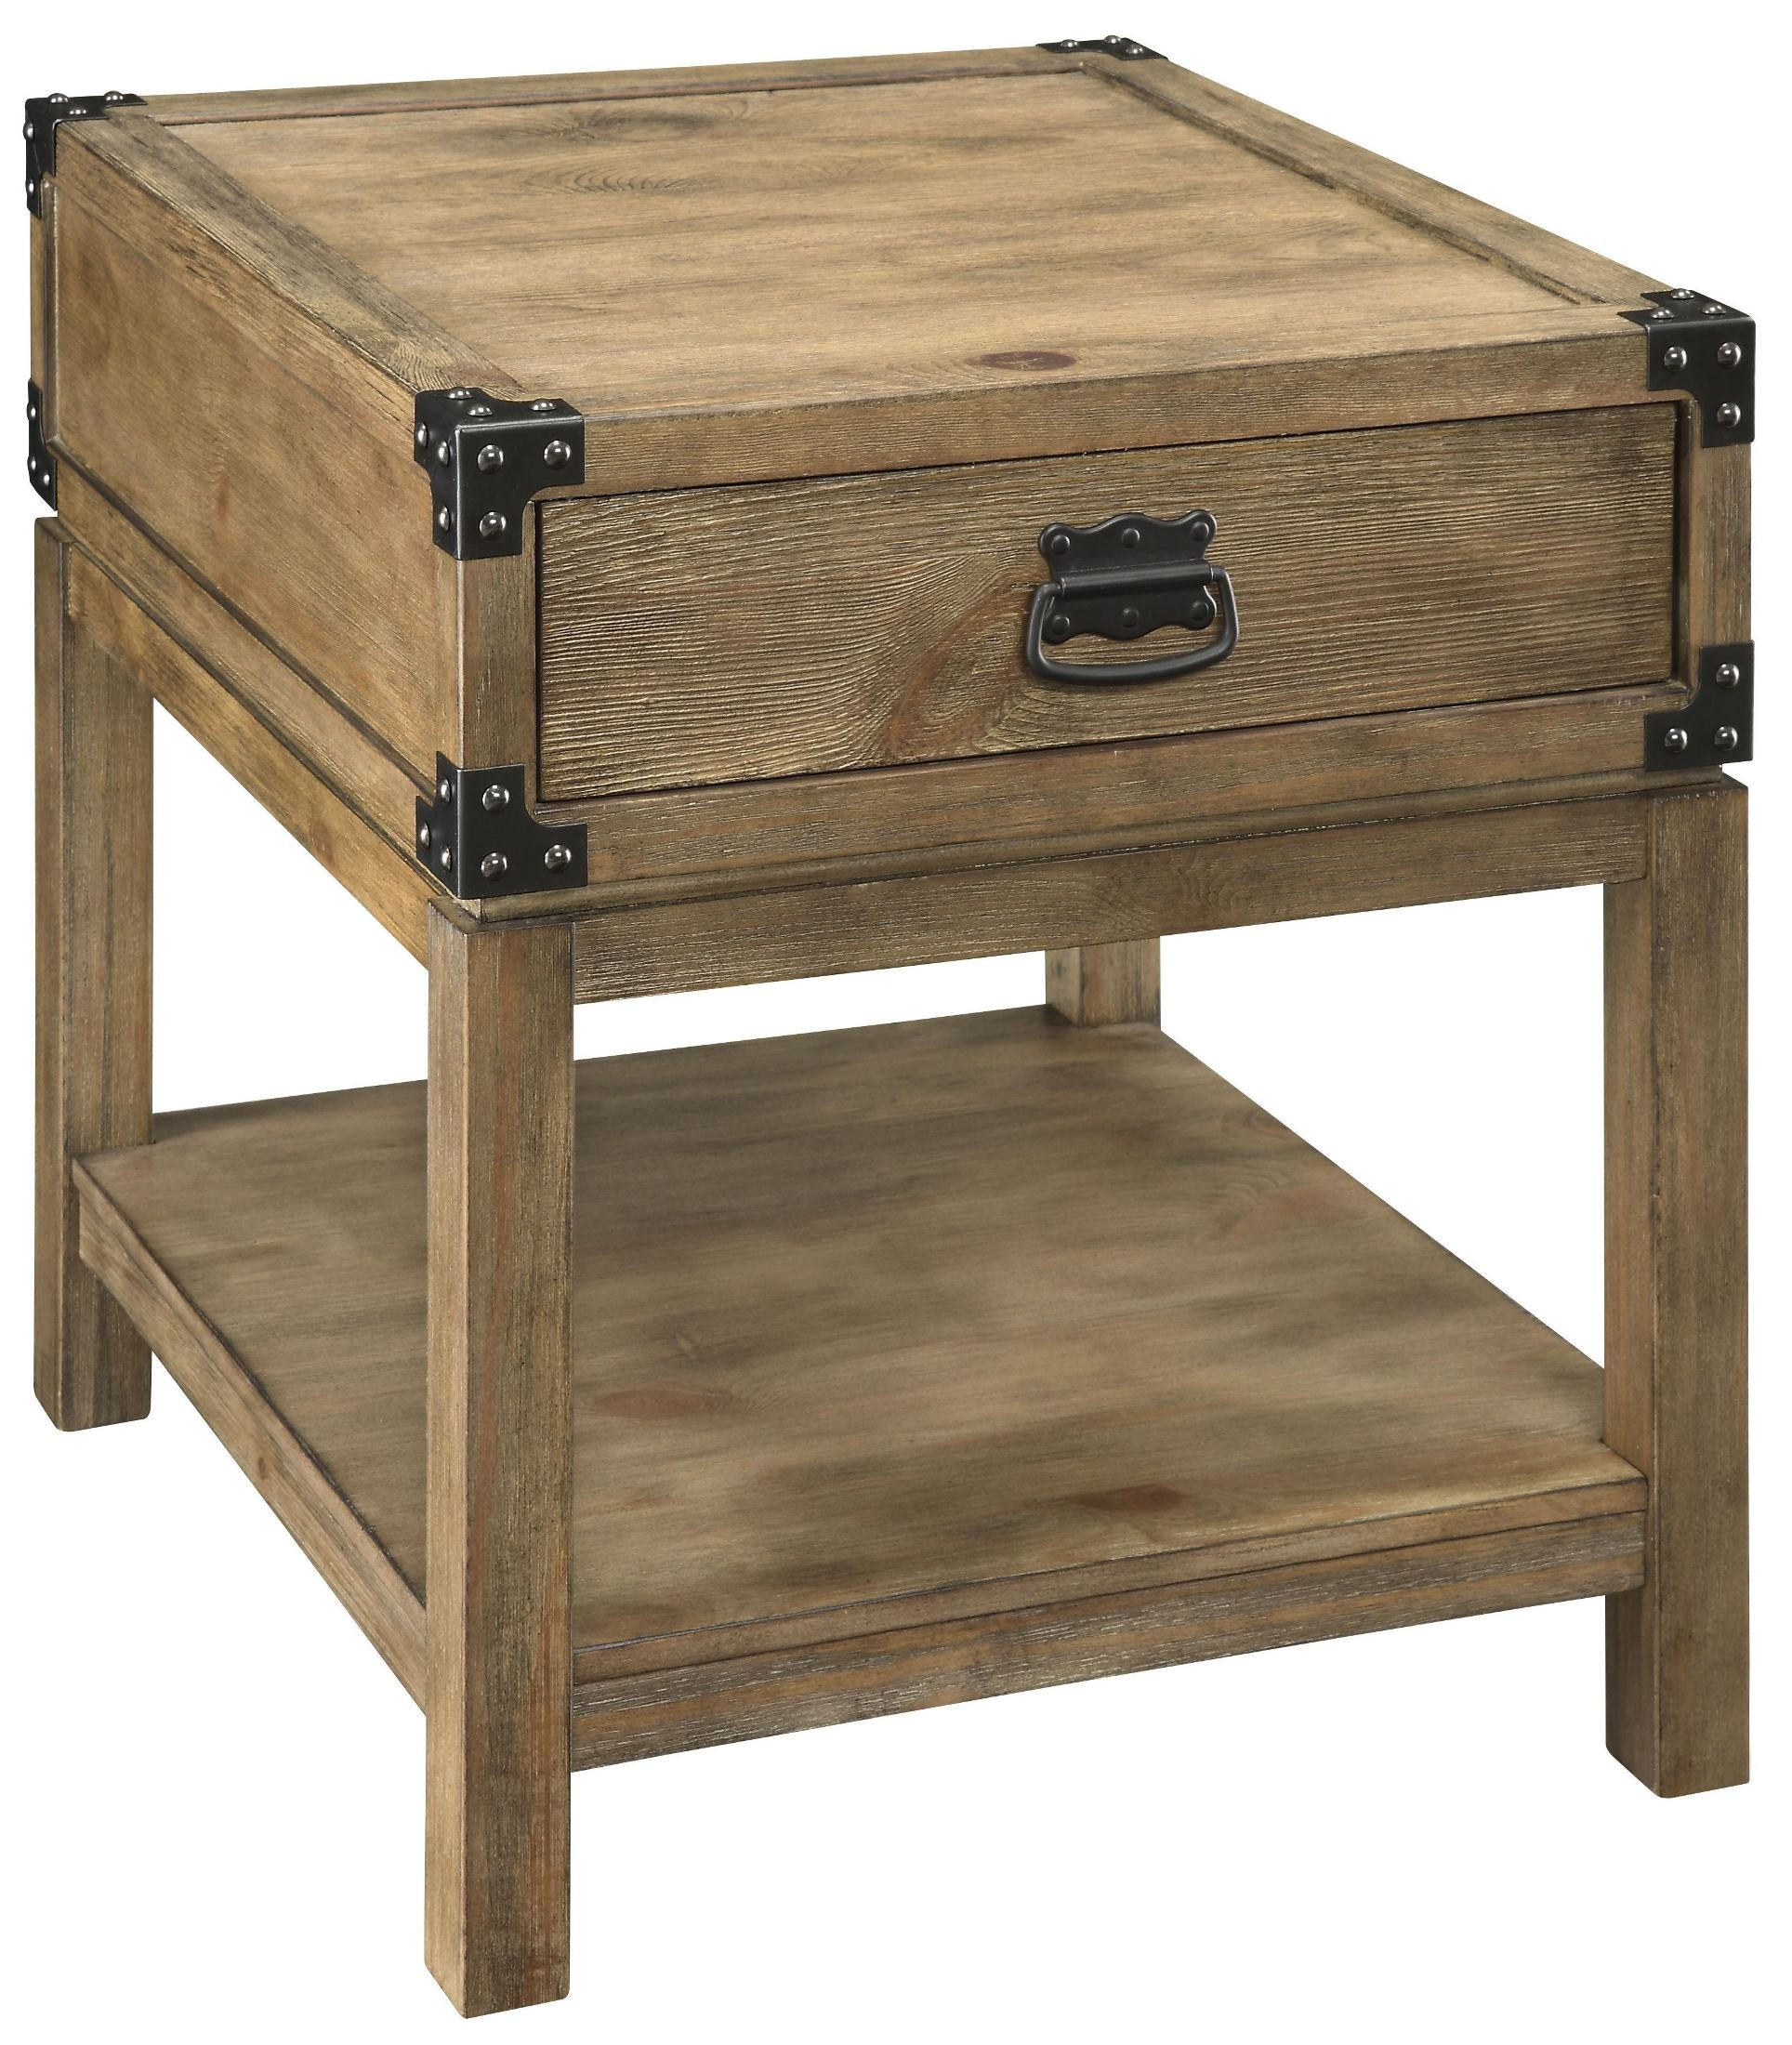 67515 Trunk End Table From Coast To Coast (67515